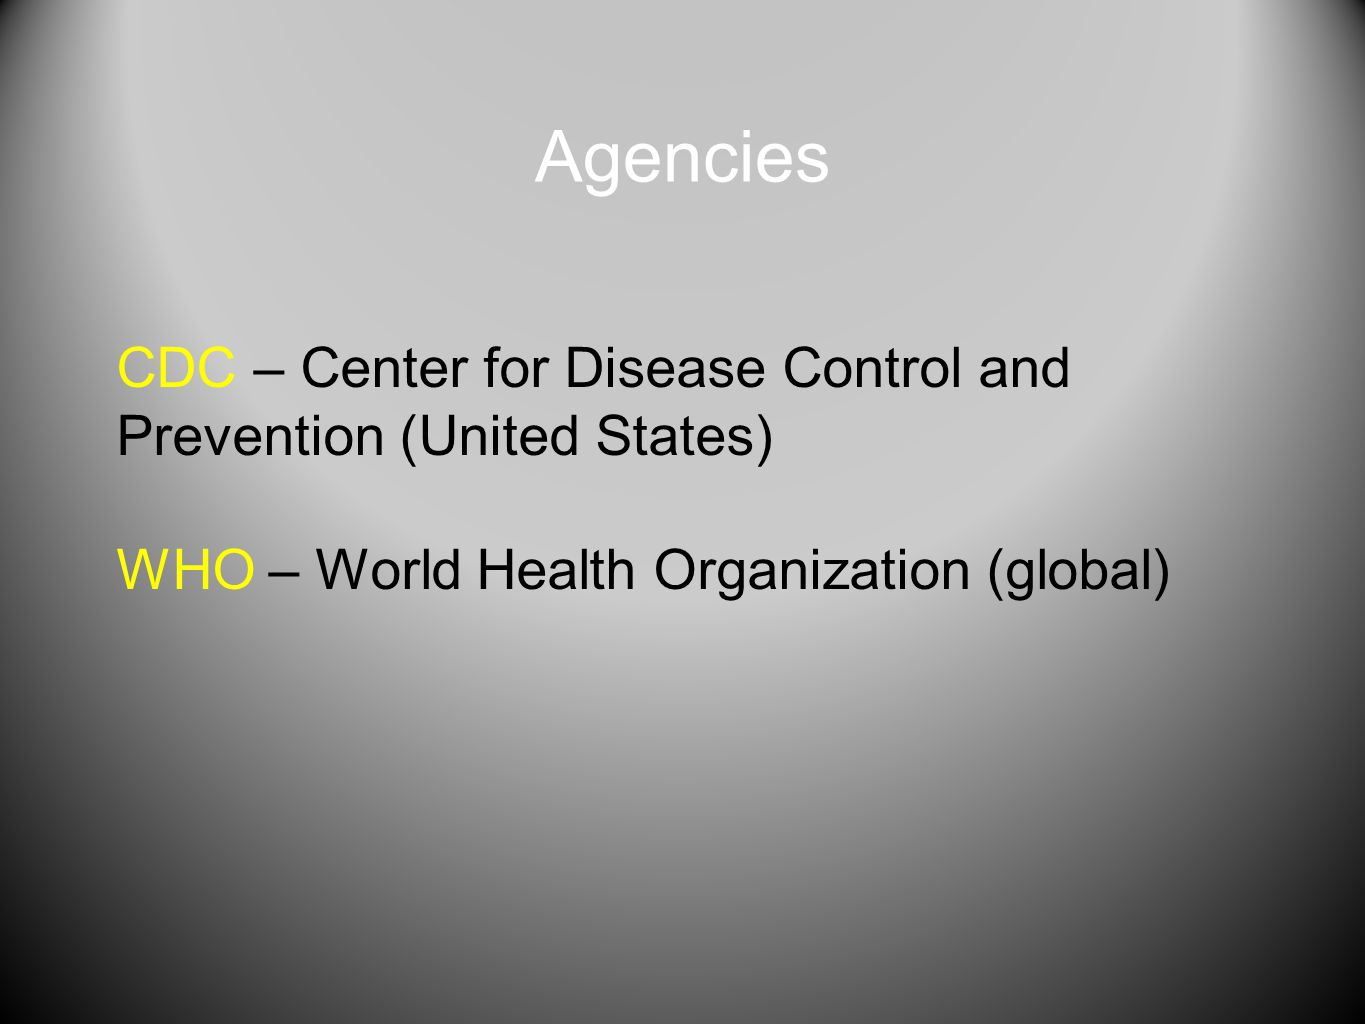 Agencies CDC – Center for Disease Control and Prevention (United States) WHO – World Health Organization (global)